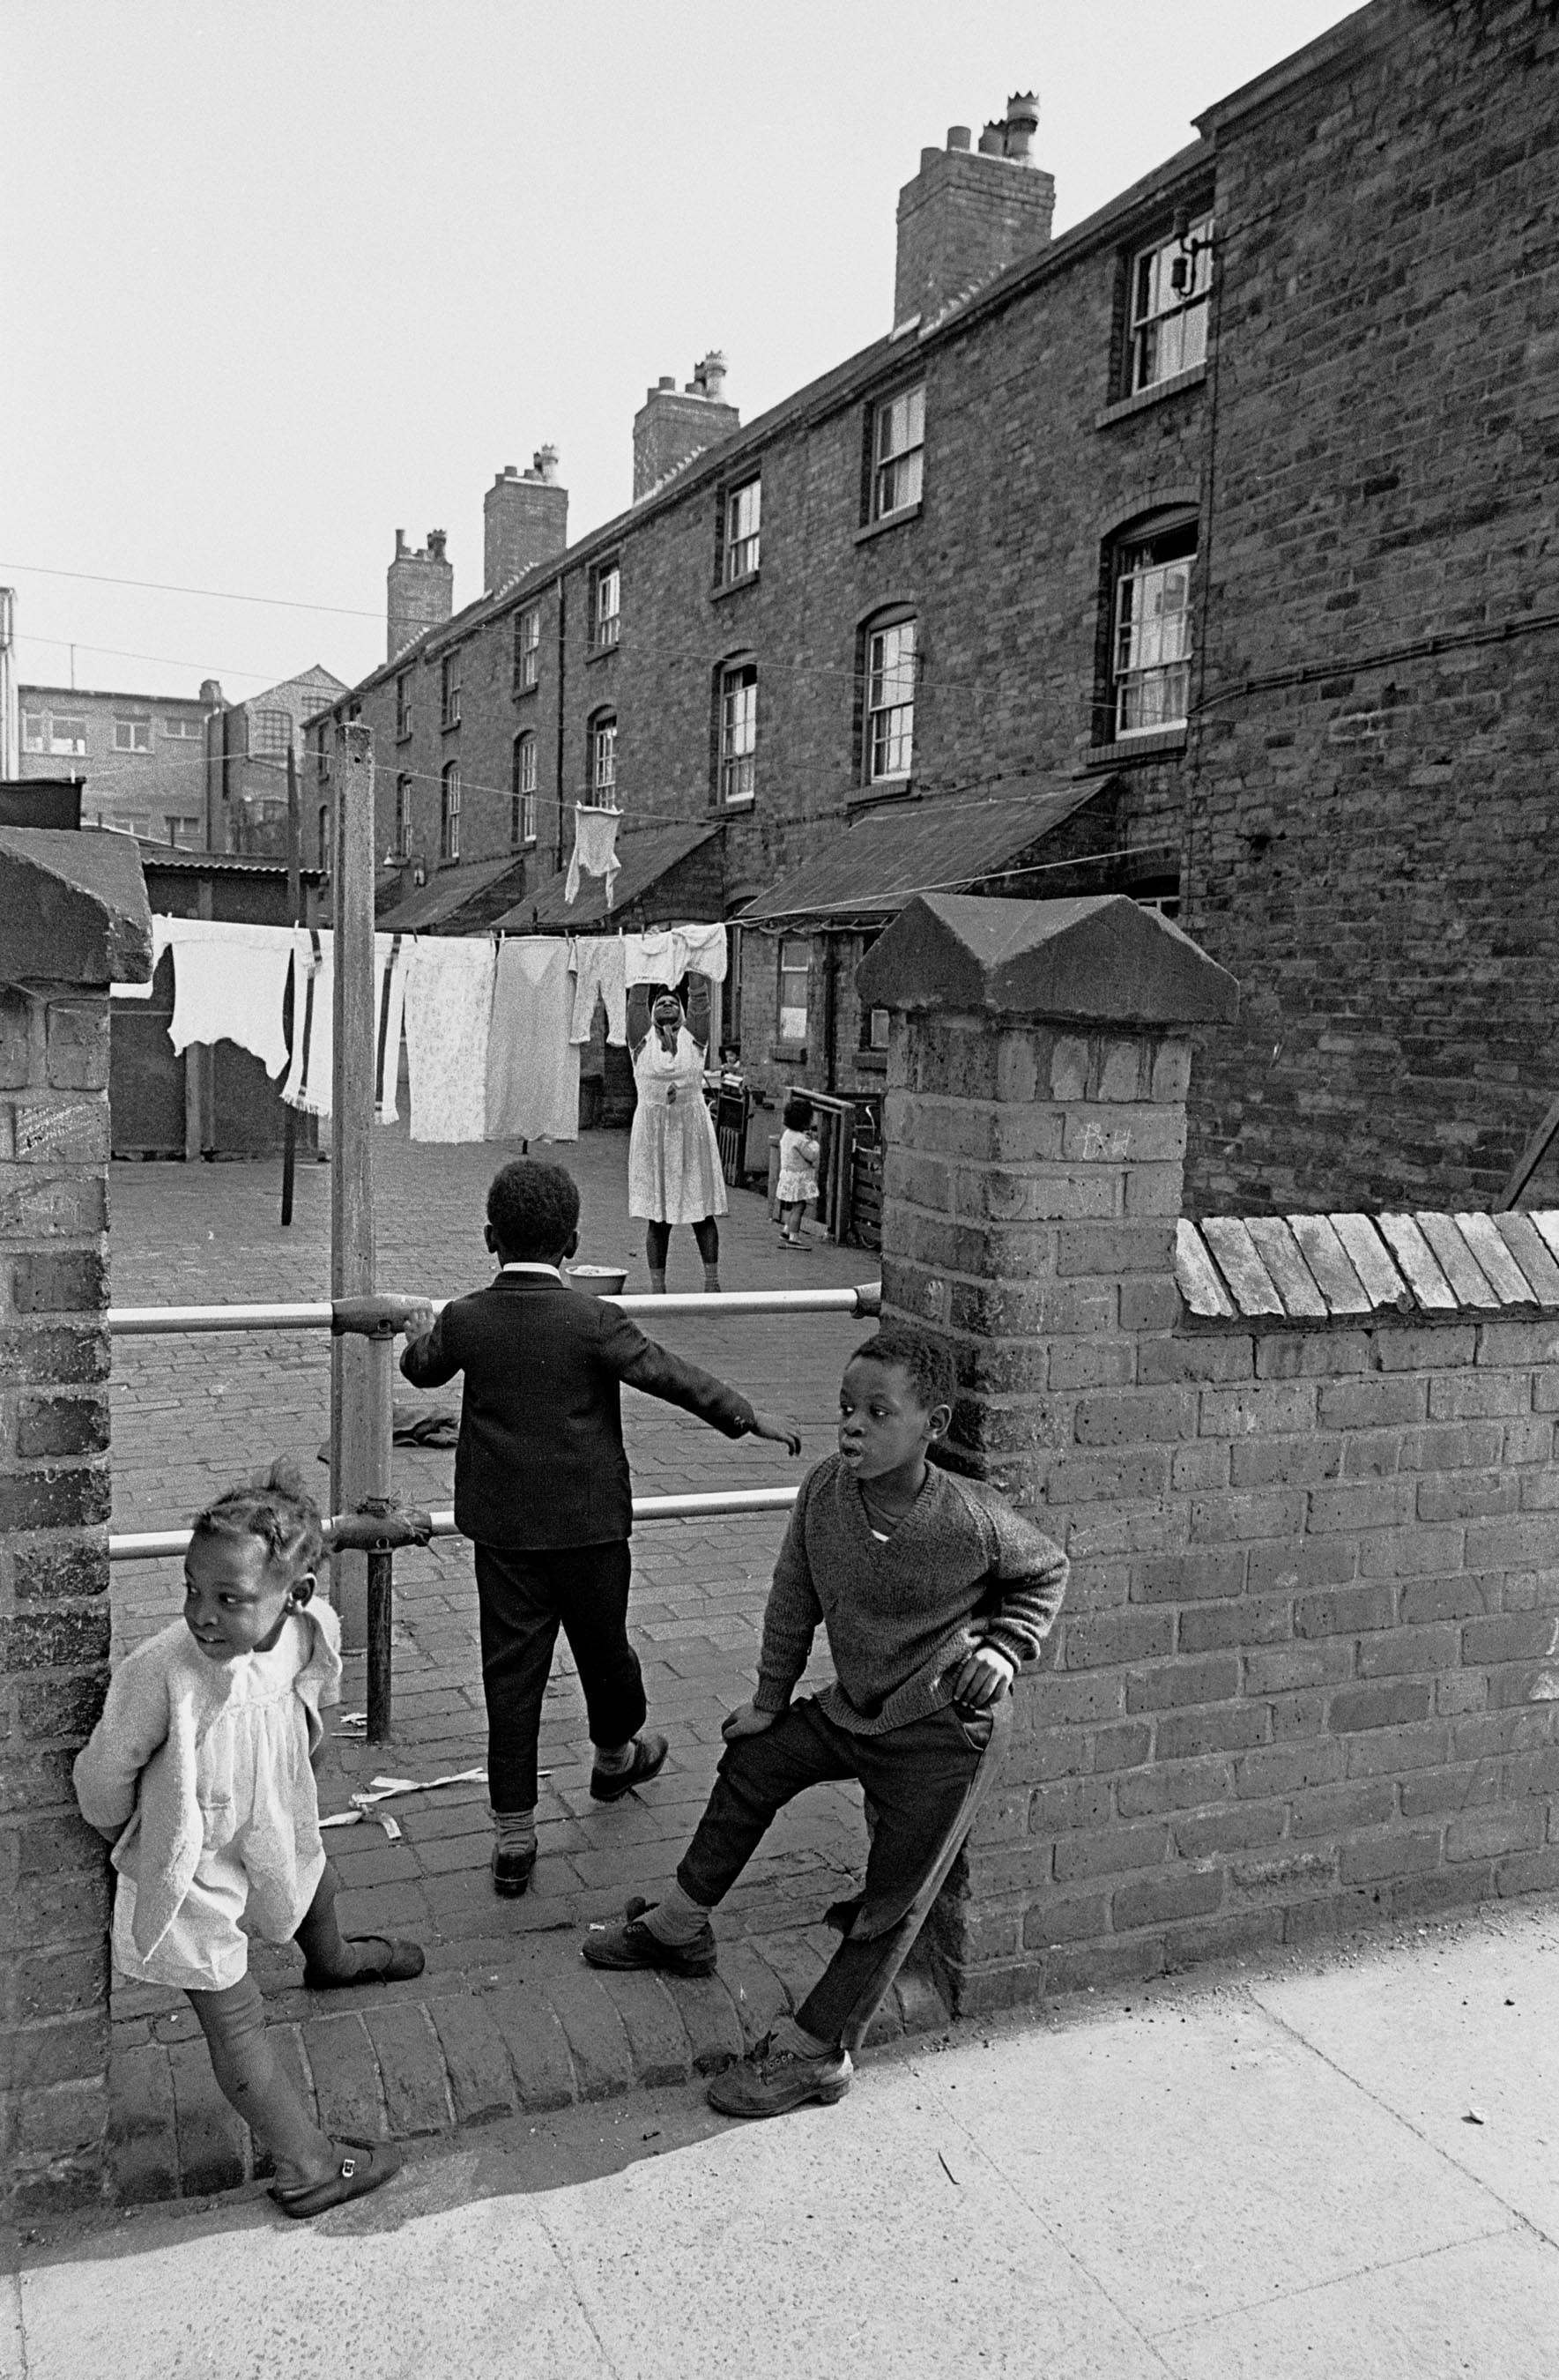 Photos Of Slum Life And Squalor In Birmingham 1969-72